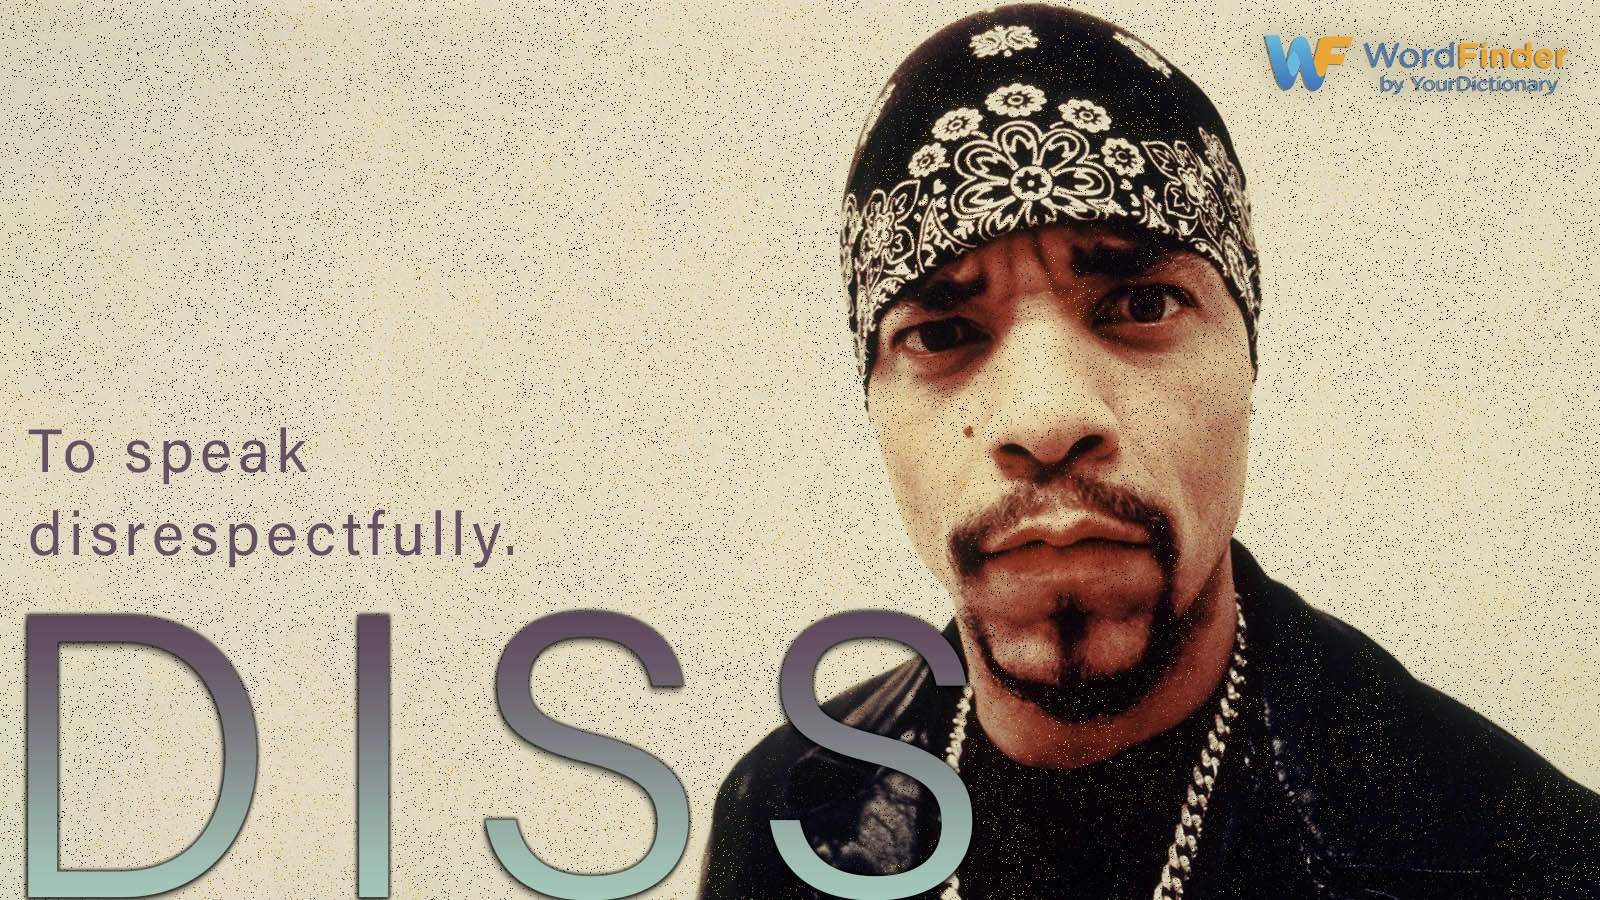 diss definition with ICE T